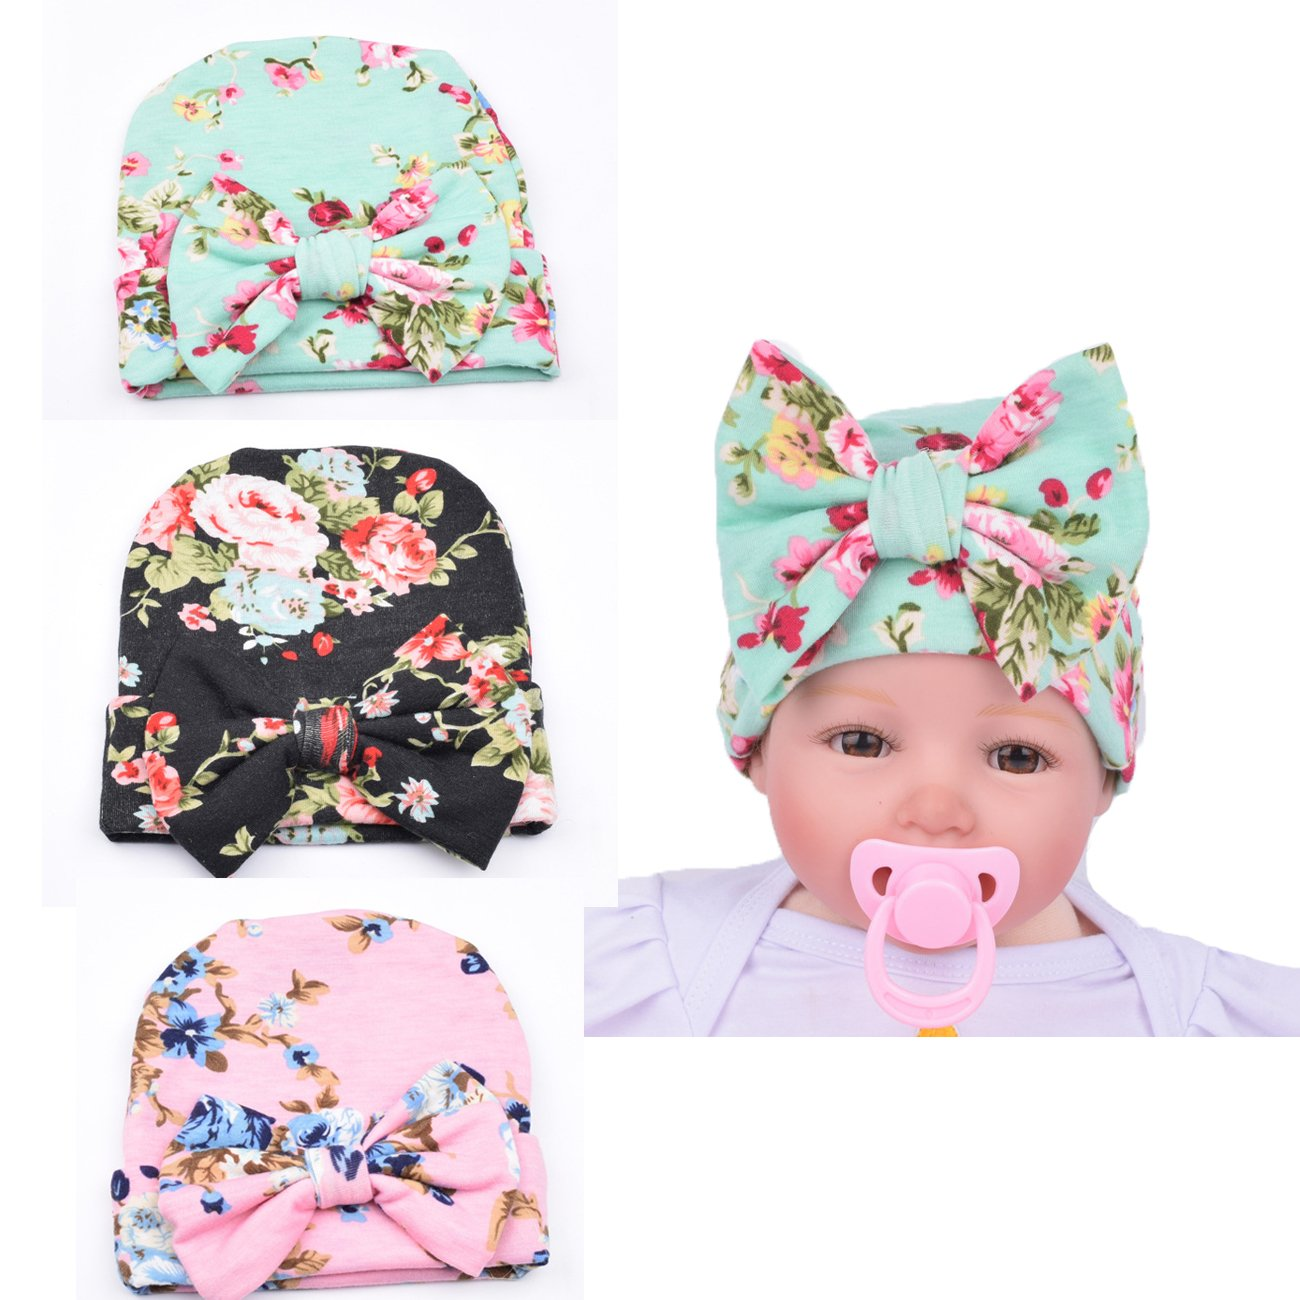 2a40d59f690 3 Pieces Newborn Head Wrap Baby Hat Infant Baby Hat Cap Girl Soft Cute  Turban with Big Bow Knit